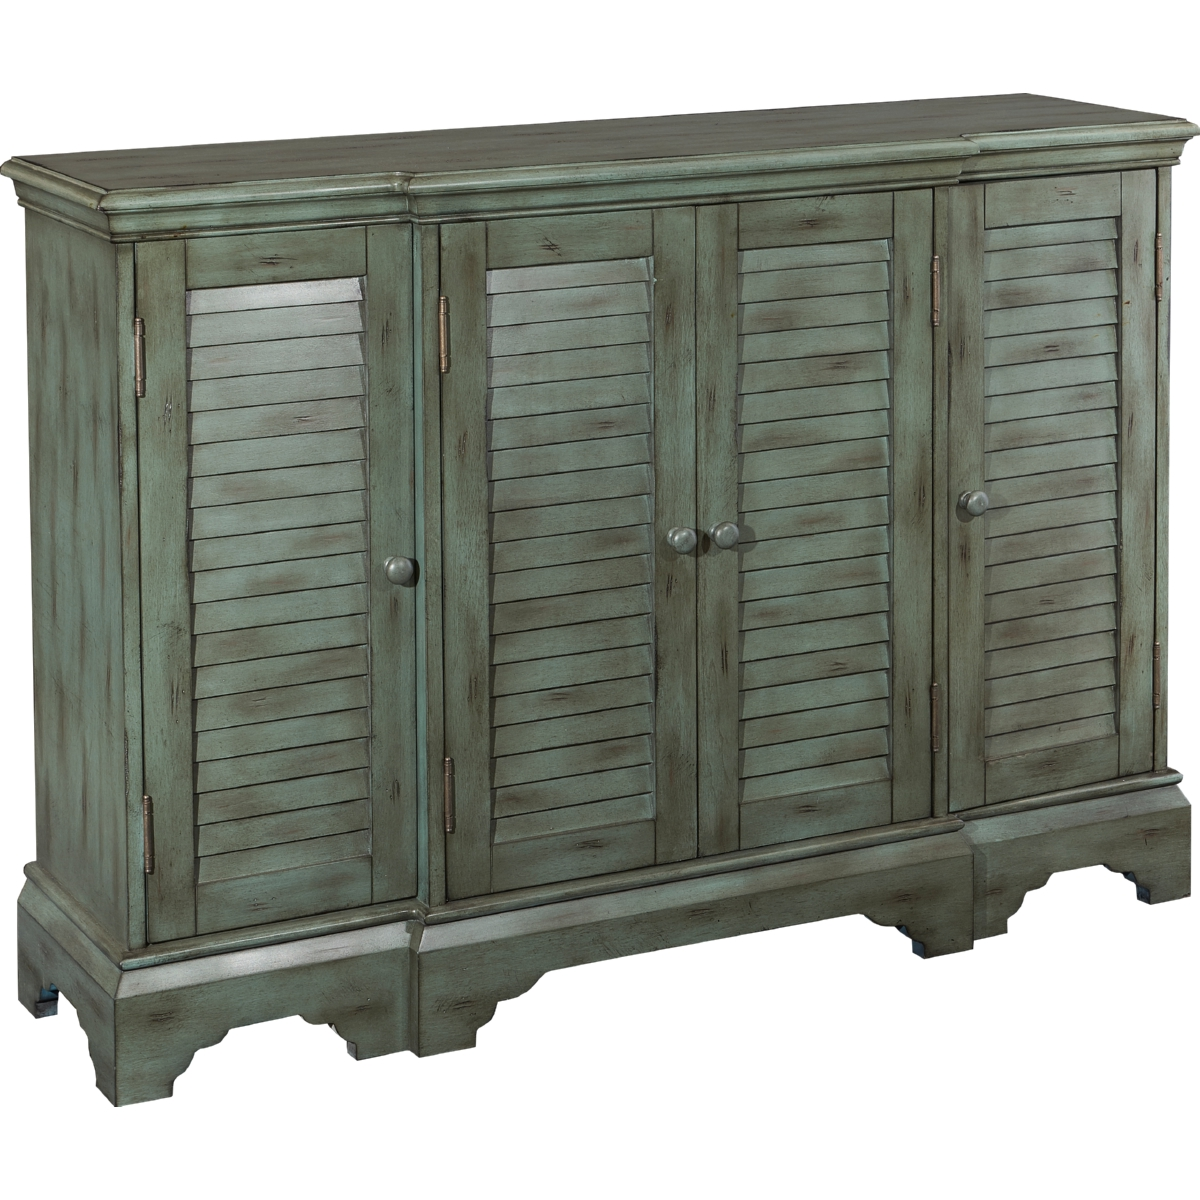 Powell Savannah Teal Shutter Console Cabinet W/ Distressed Finish